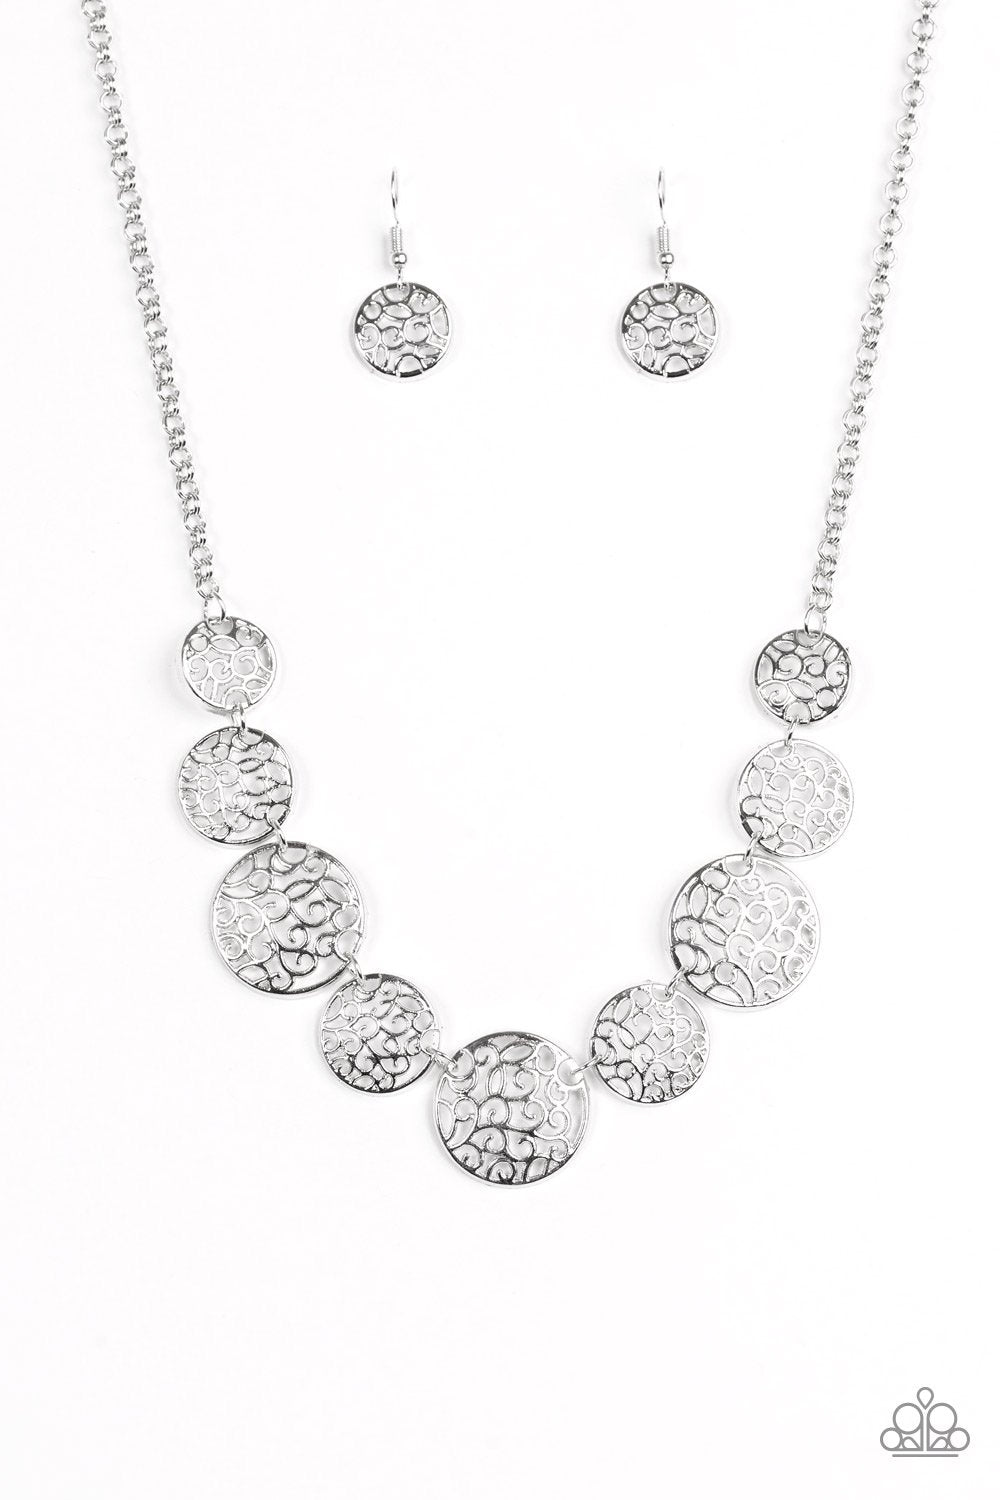 Paparazzi Accessories ~ All The Time In The WHIRL - Silver